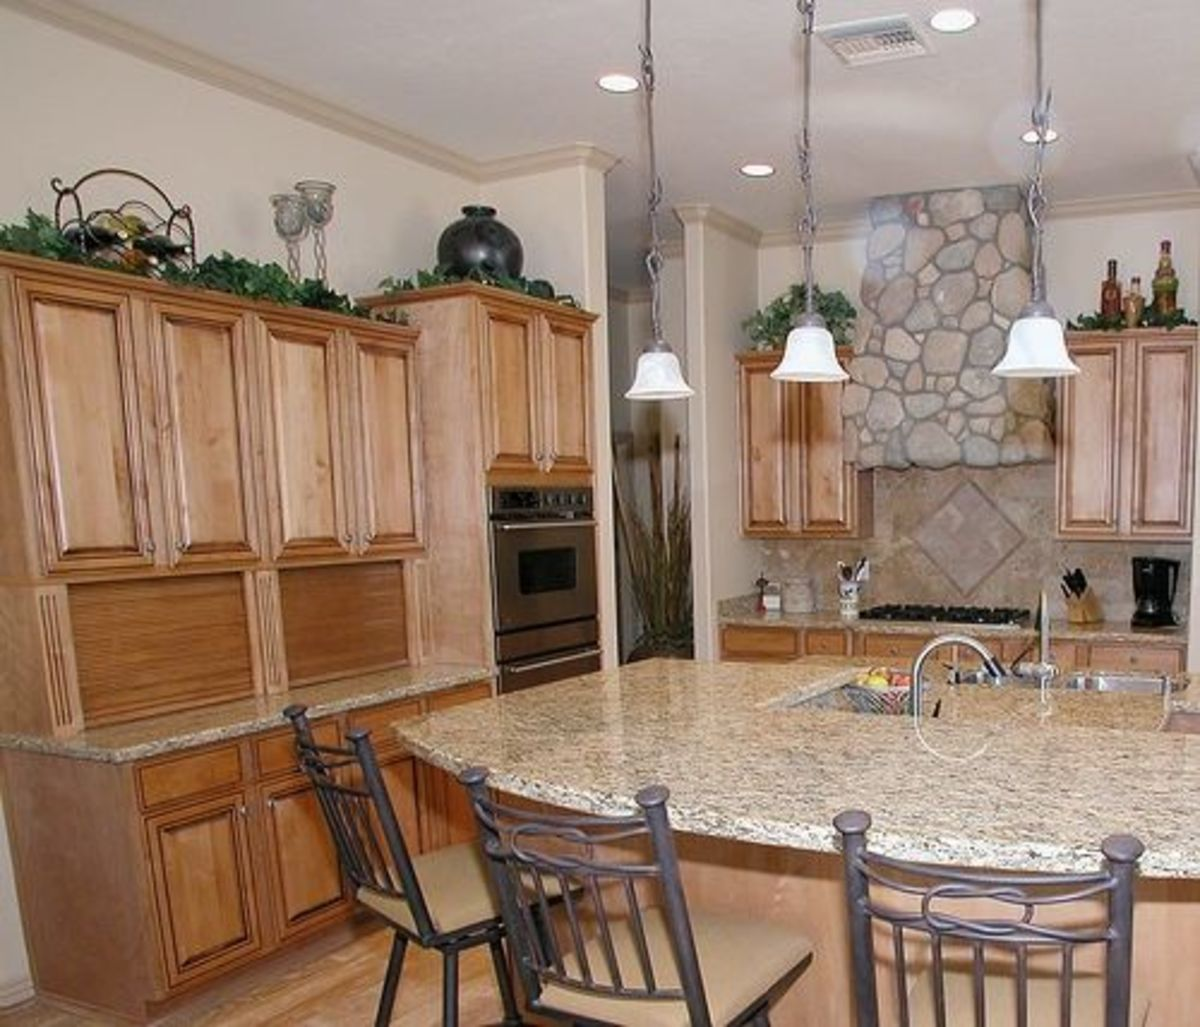 Appliance garage in a traditional kitchen.